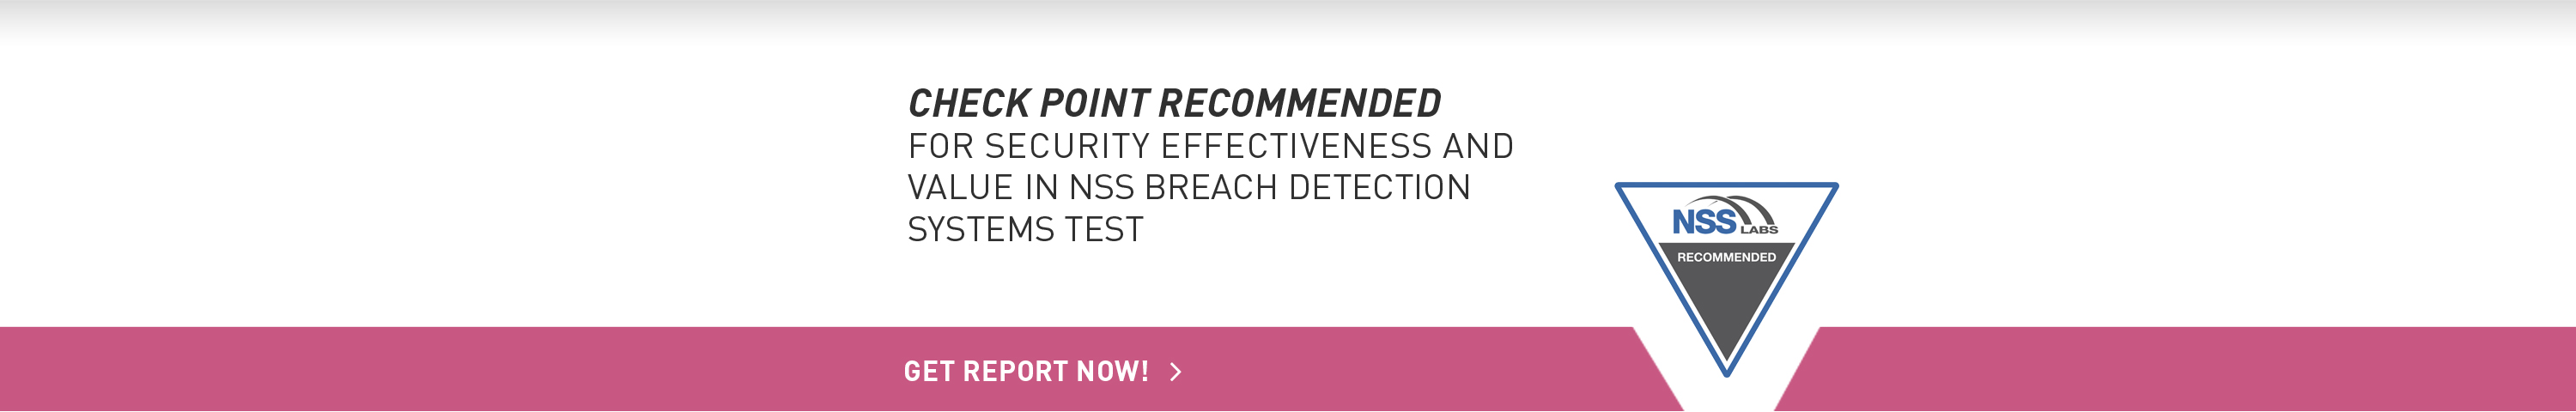 Check Point Recommended in 2015 NSS Breach Detection Systems Test